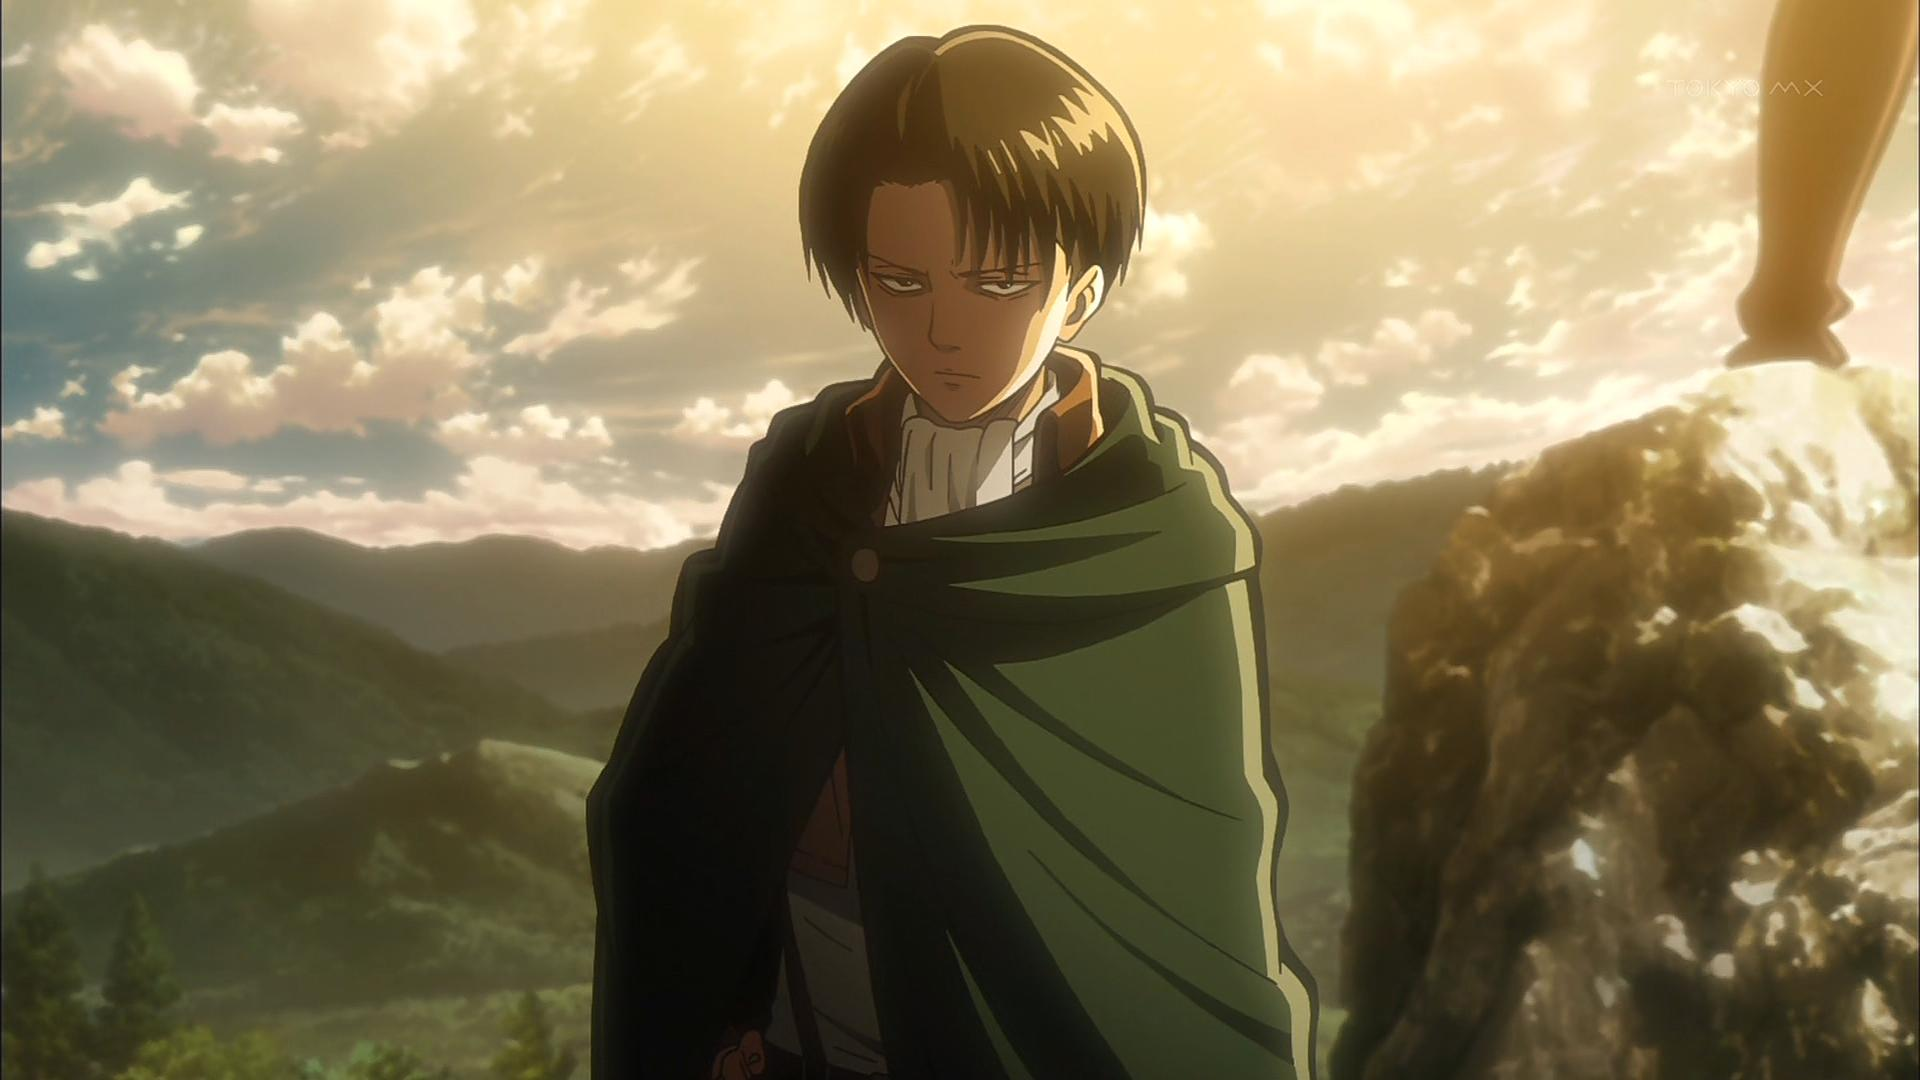 Displaying 16 Images For Attack On Titan Captain Levi Captain Levi Wallpaper 4k 1920x1080 Download Hd Wallpaper Wallpapertip